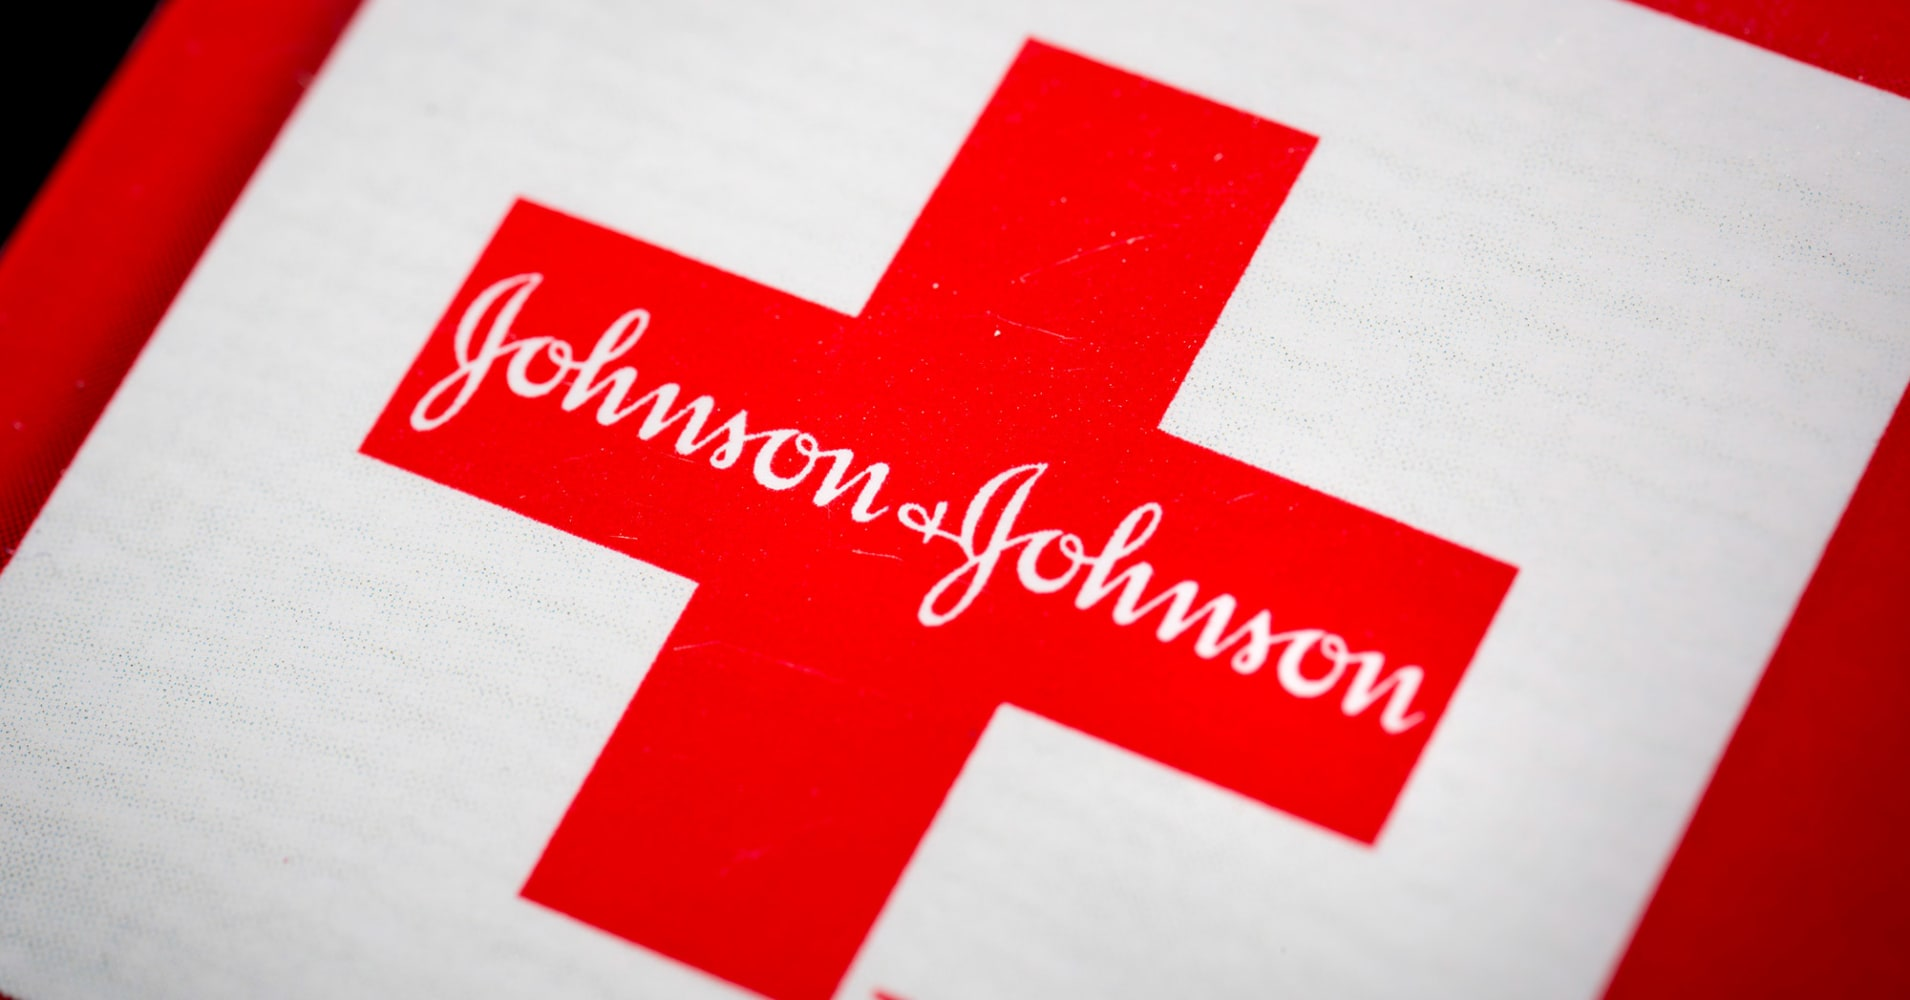 J&J's market value plunged after report on asbestos in its baby powder